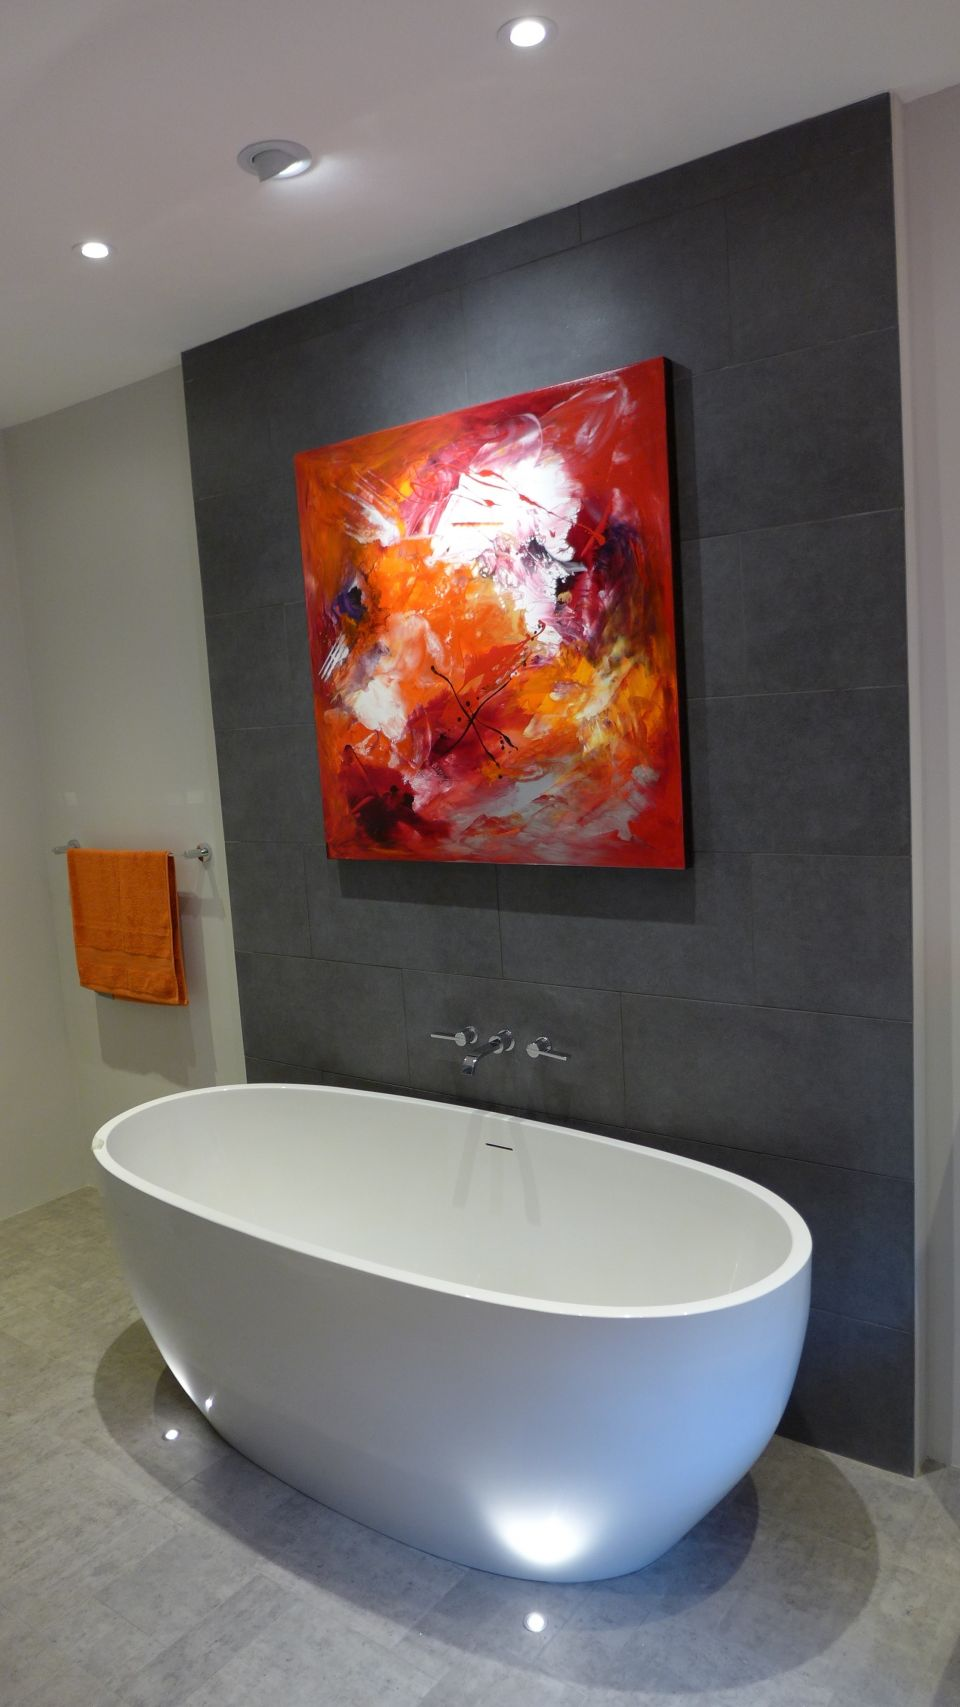 interior design in Bath - here, a freestanding bath with grey tiled feature wall and bathroom art beautifully illuminated